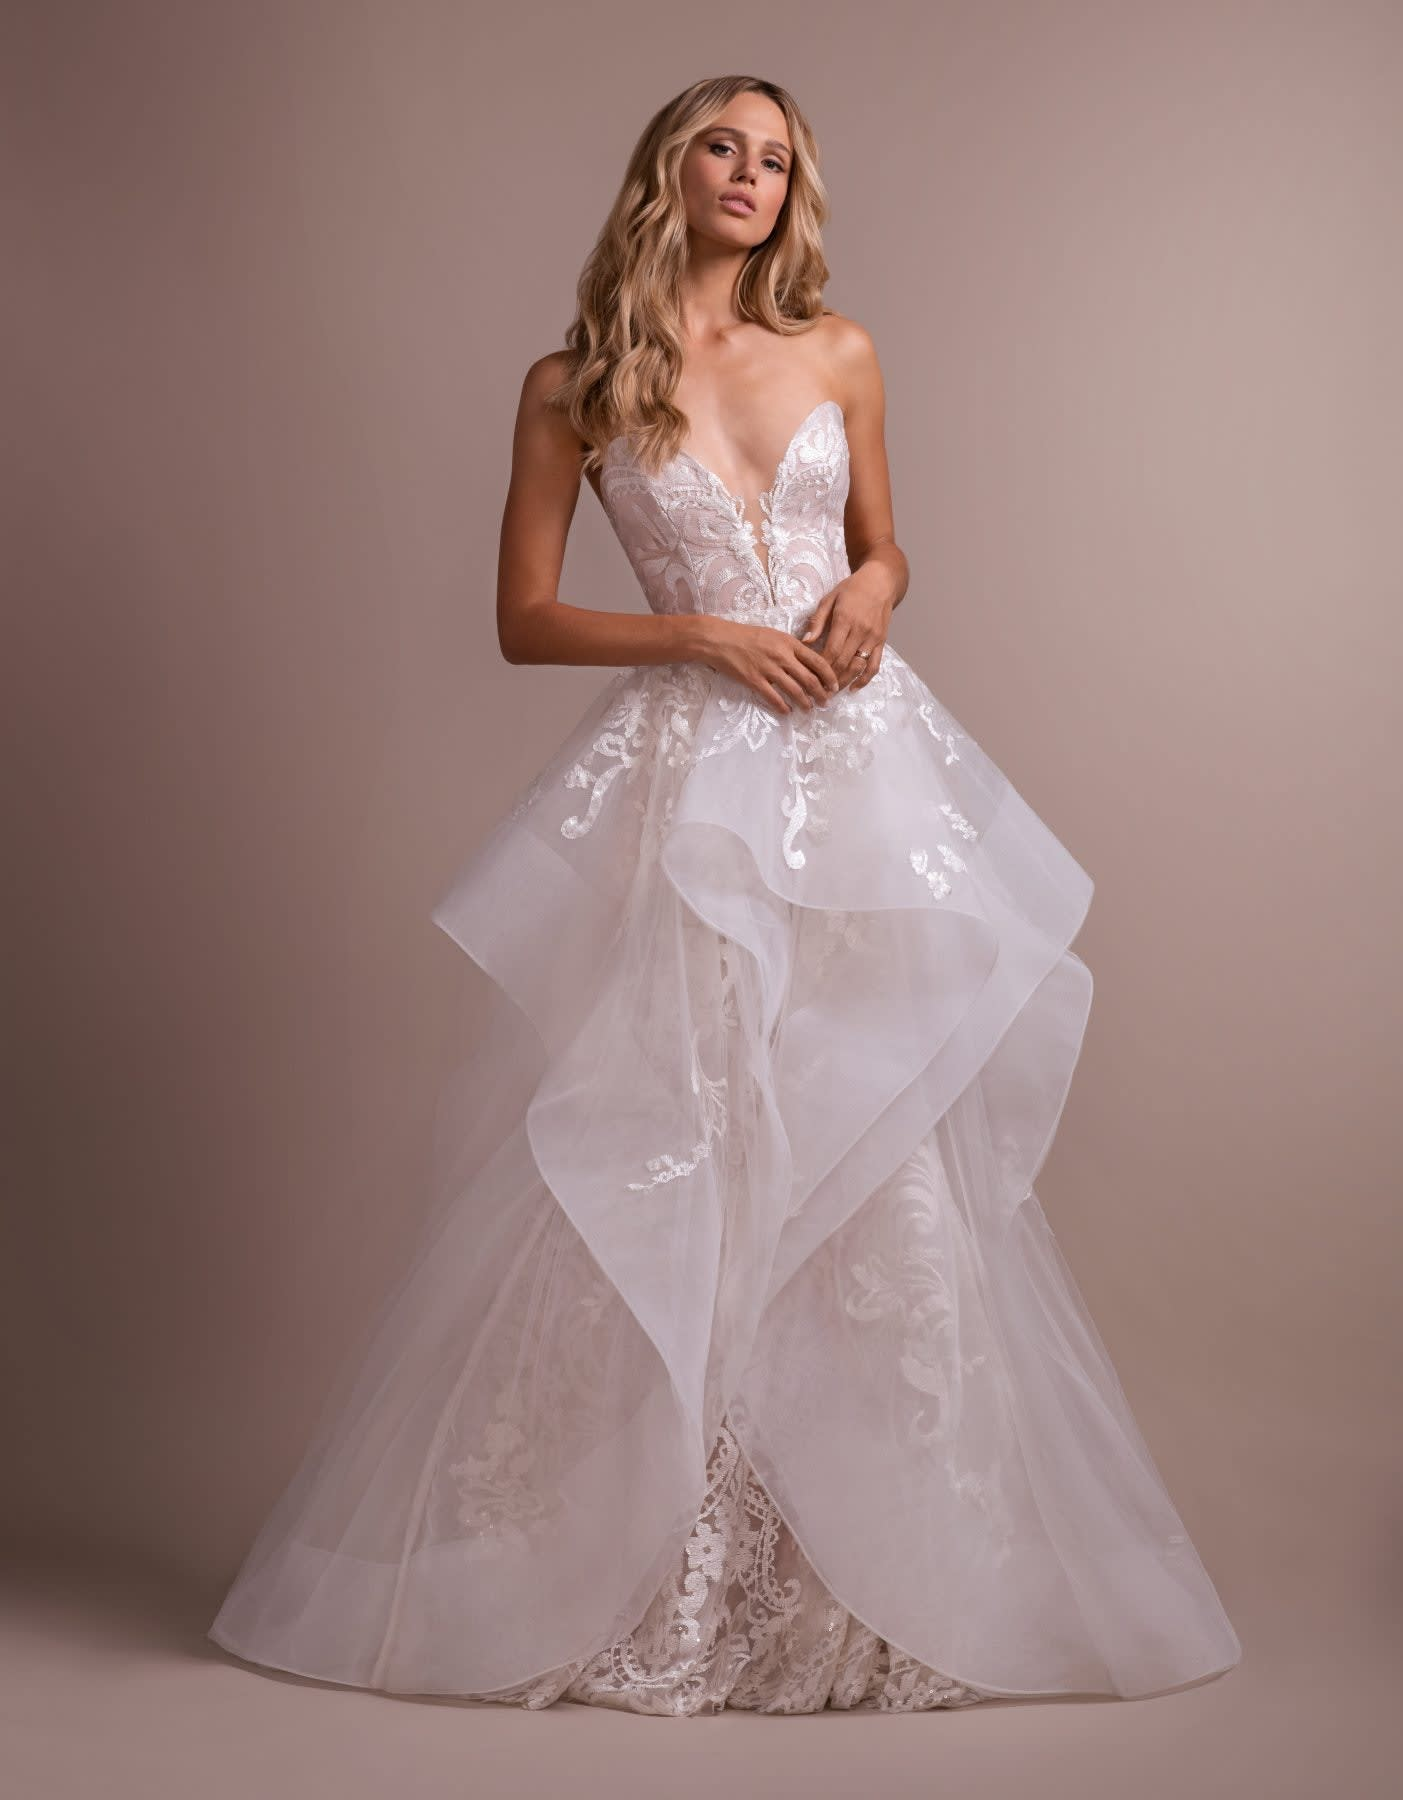 A sweetheart, strapless gown with a lacy underlay and flowy overskirt